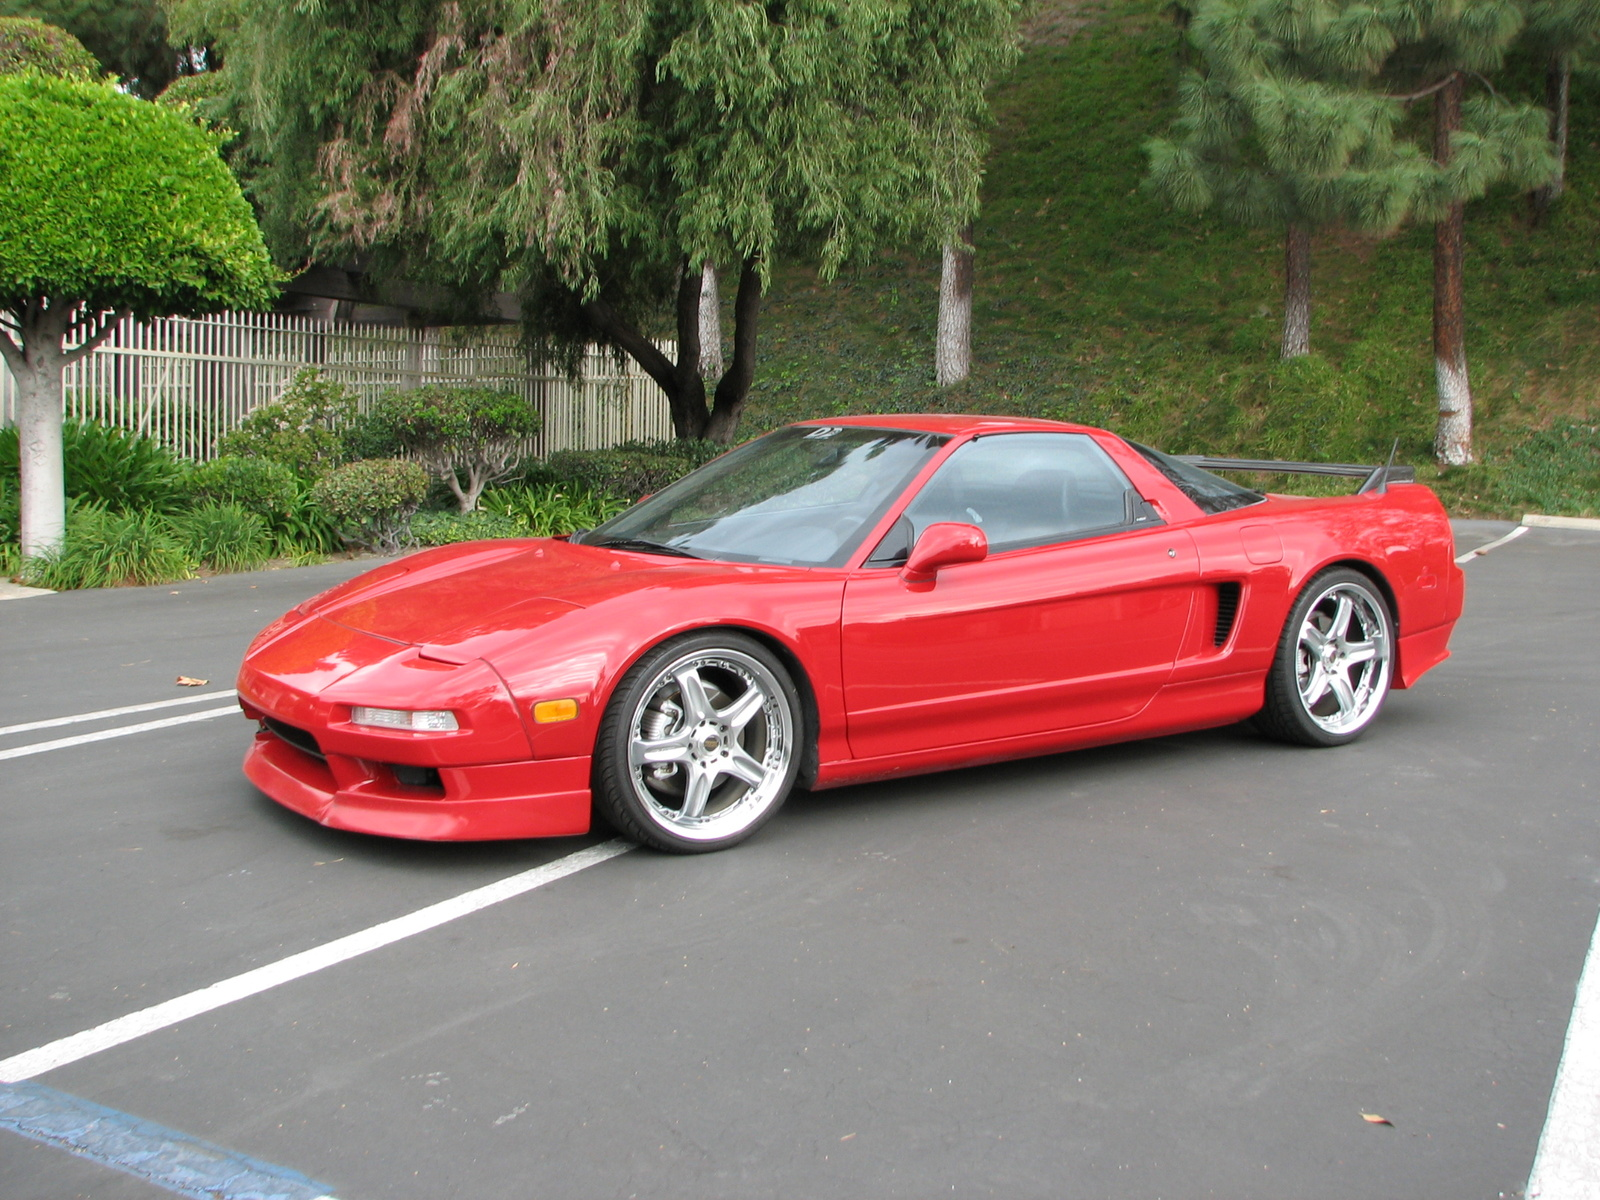 1996 Honda Nsx coupe (na) – pictures, information and specs - Auto ...